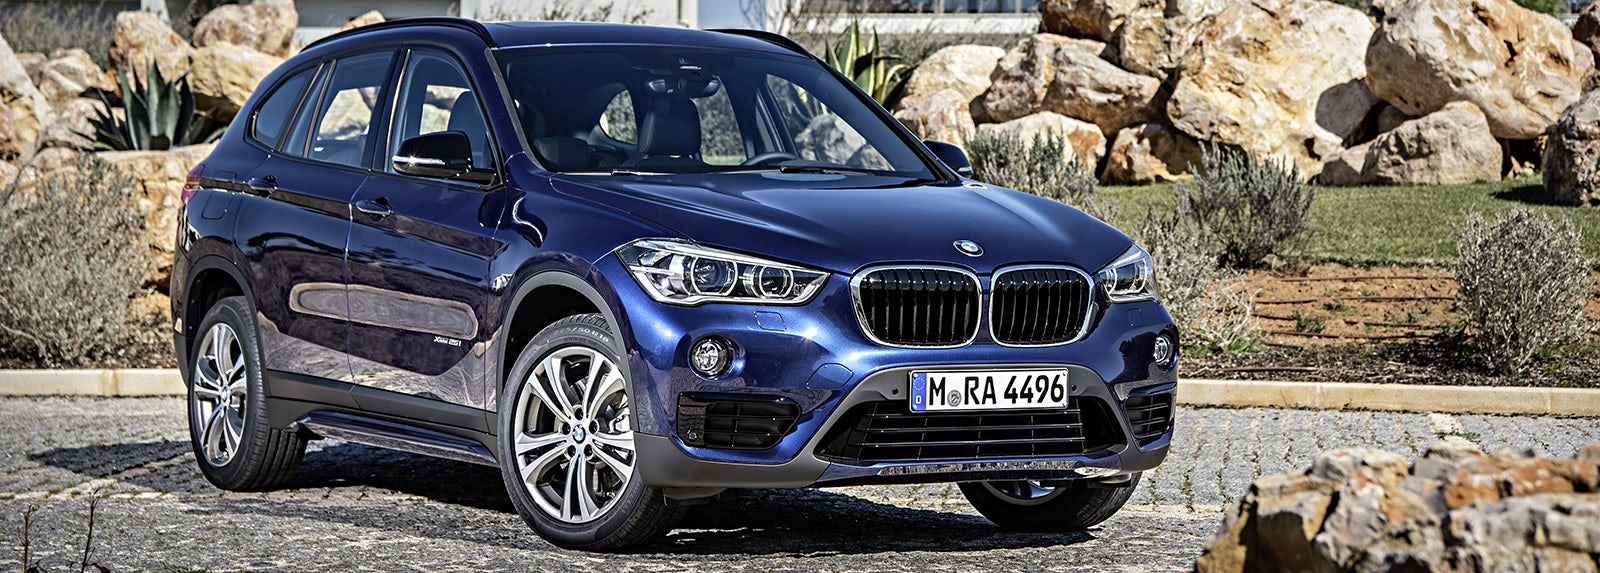 BMW X1 sizes and dimensions guide  carwow